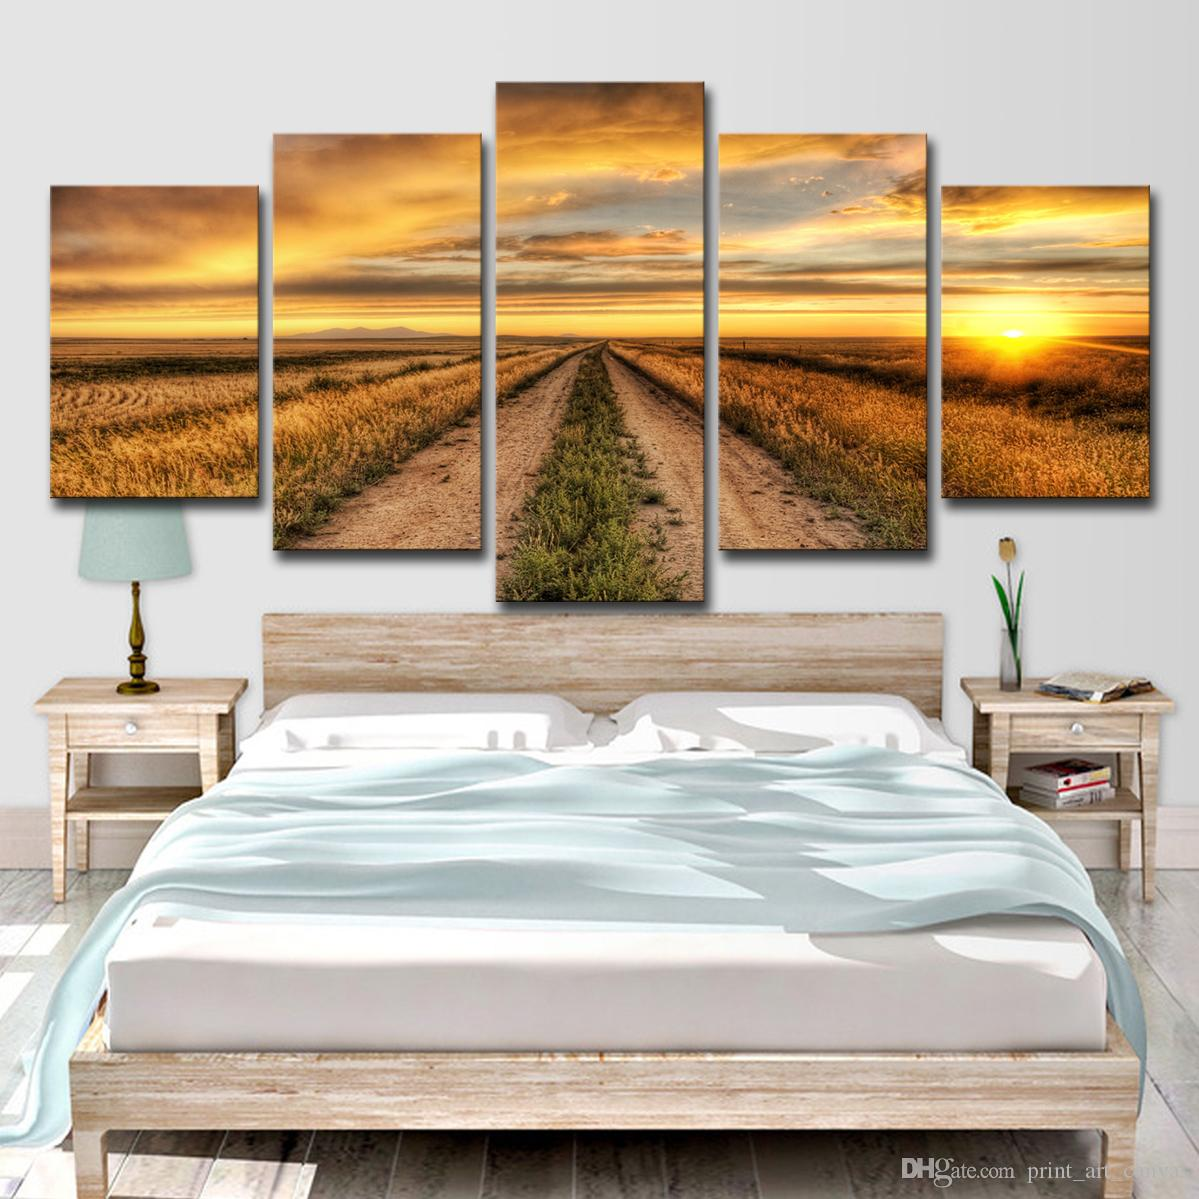 2019 Hd Print Country Road At Sunset Farm Painting Canvas Print Room Decor Poster Wall Art Picture Canvas From Print Art Canvas 16 41 Dhgate Com